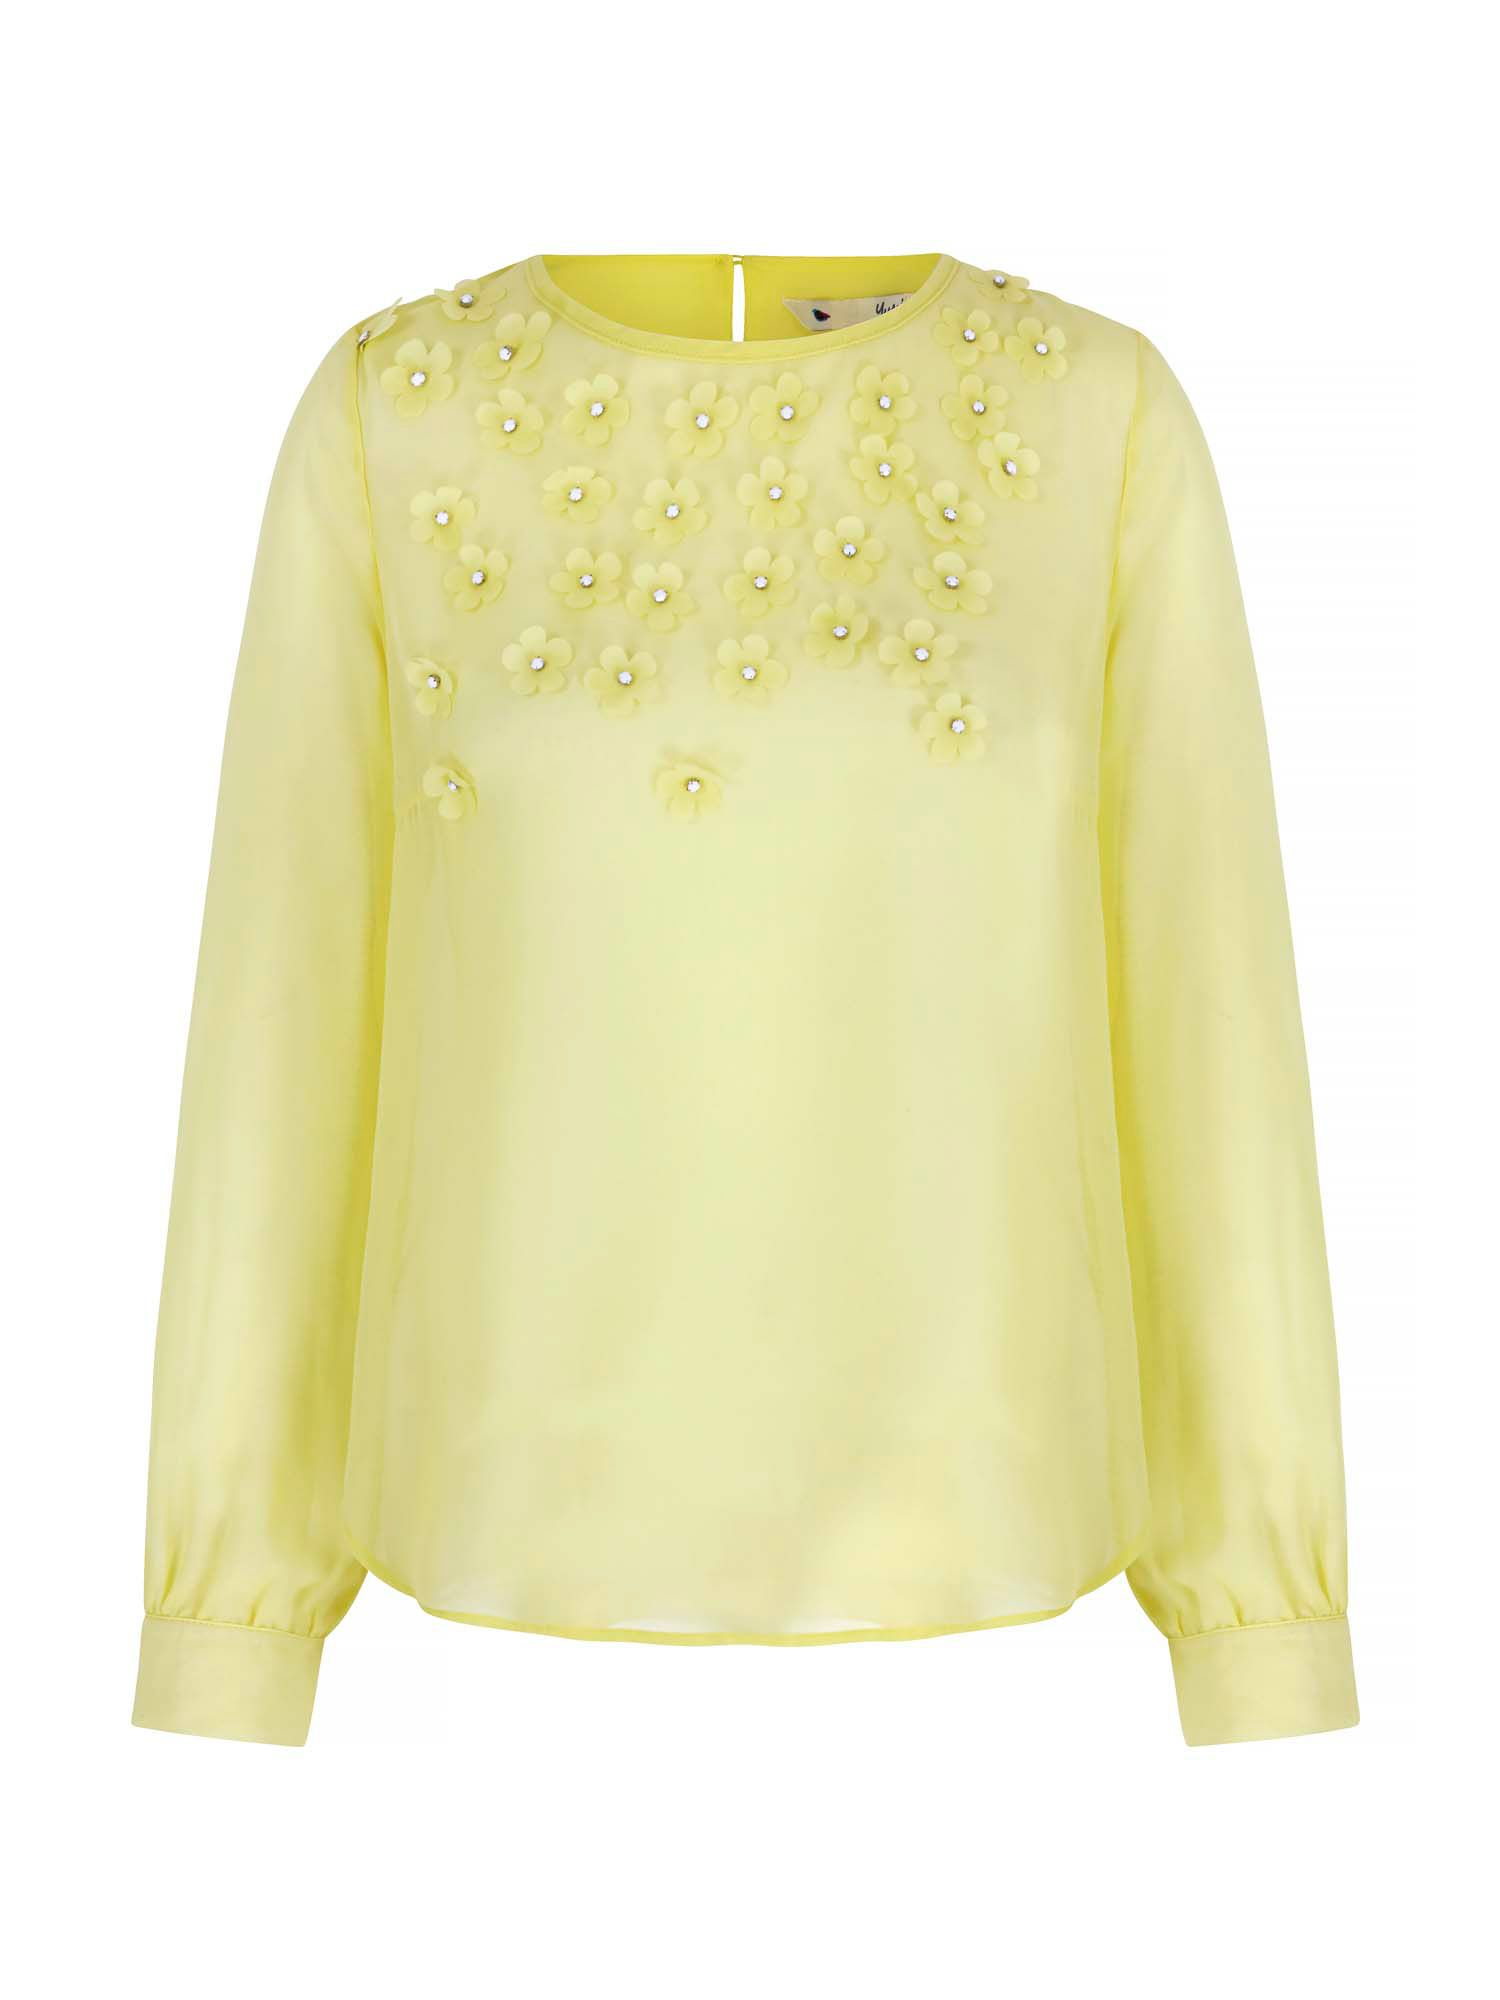 Yumi 3D Floral Embellished Top, Green